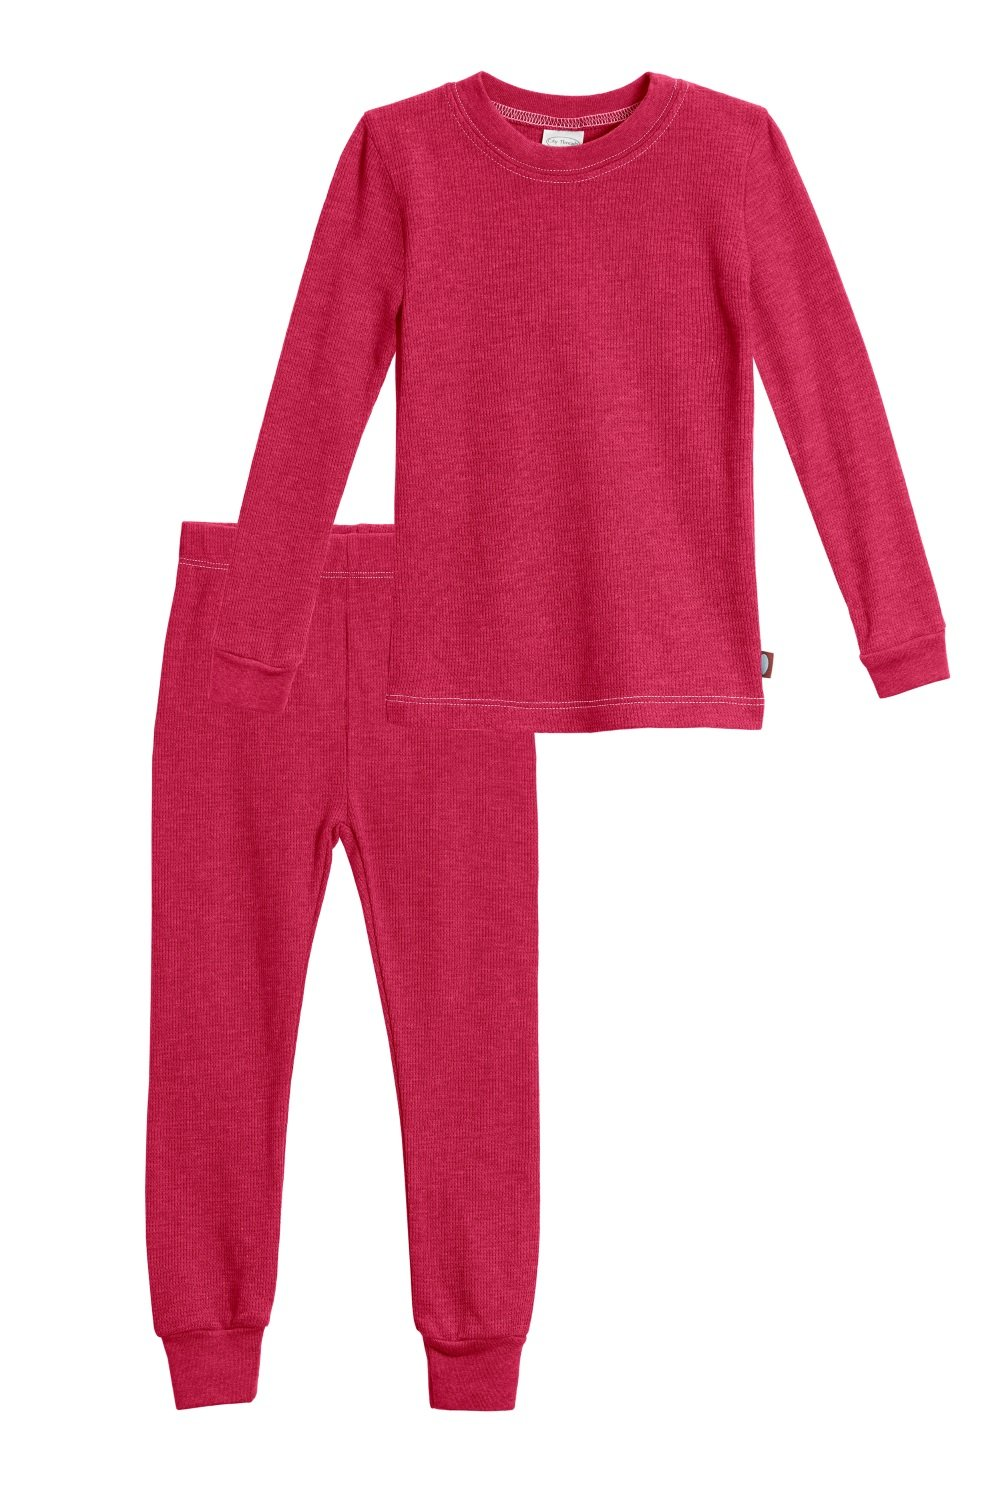 City Threads Little Girls Thermal Underwear Set Perfect for Sensitive Skin SPD Sensory Friendly, Candy Apple Red, 5 by City Threads